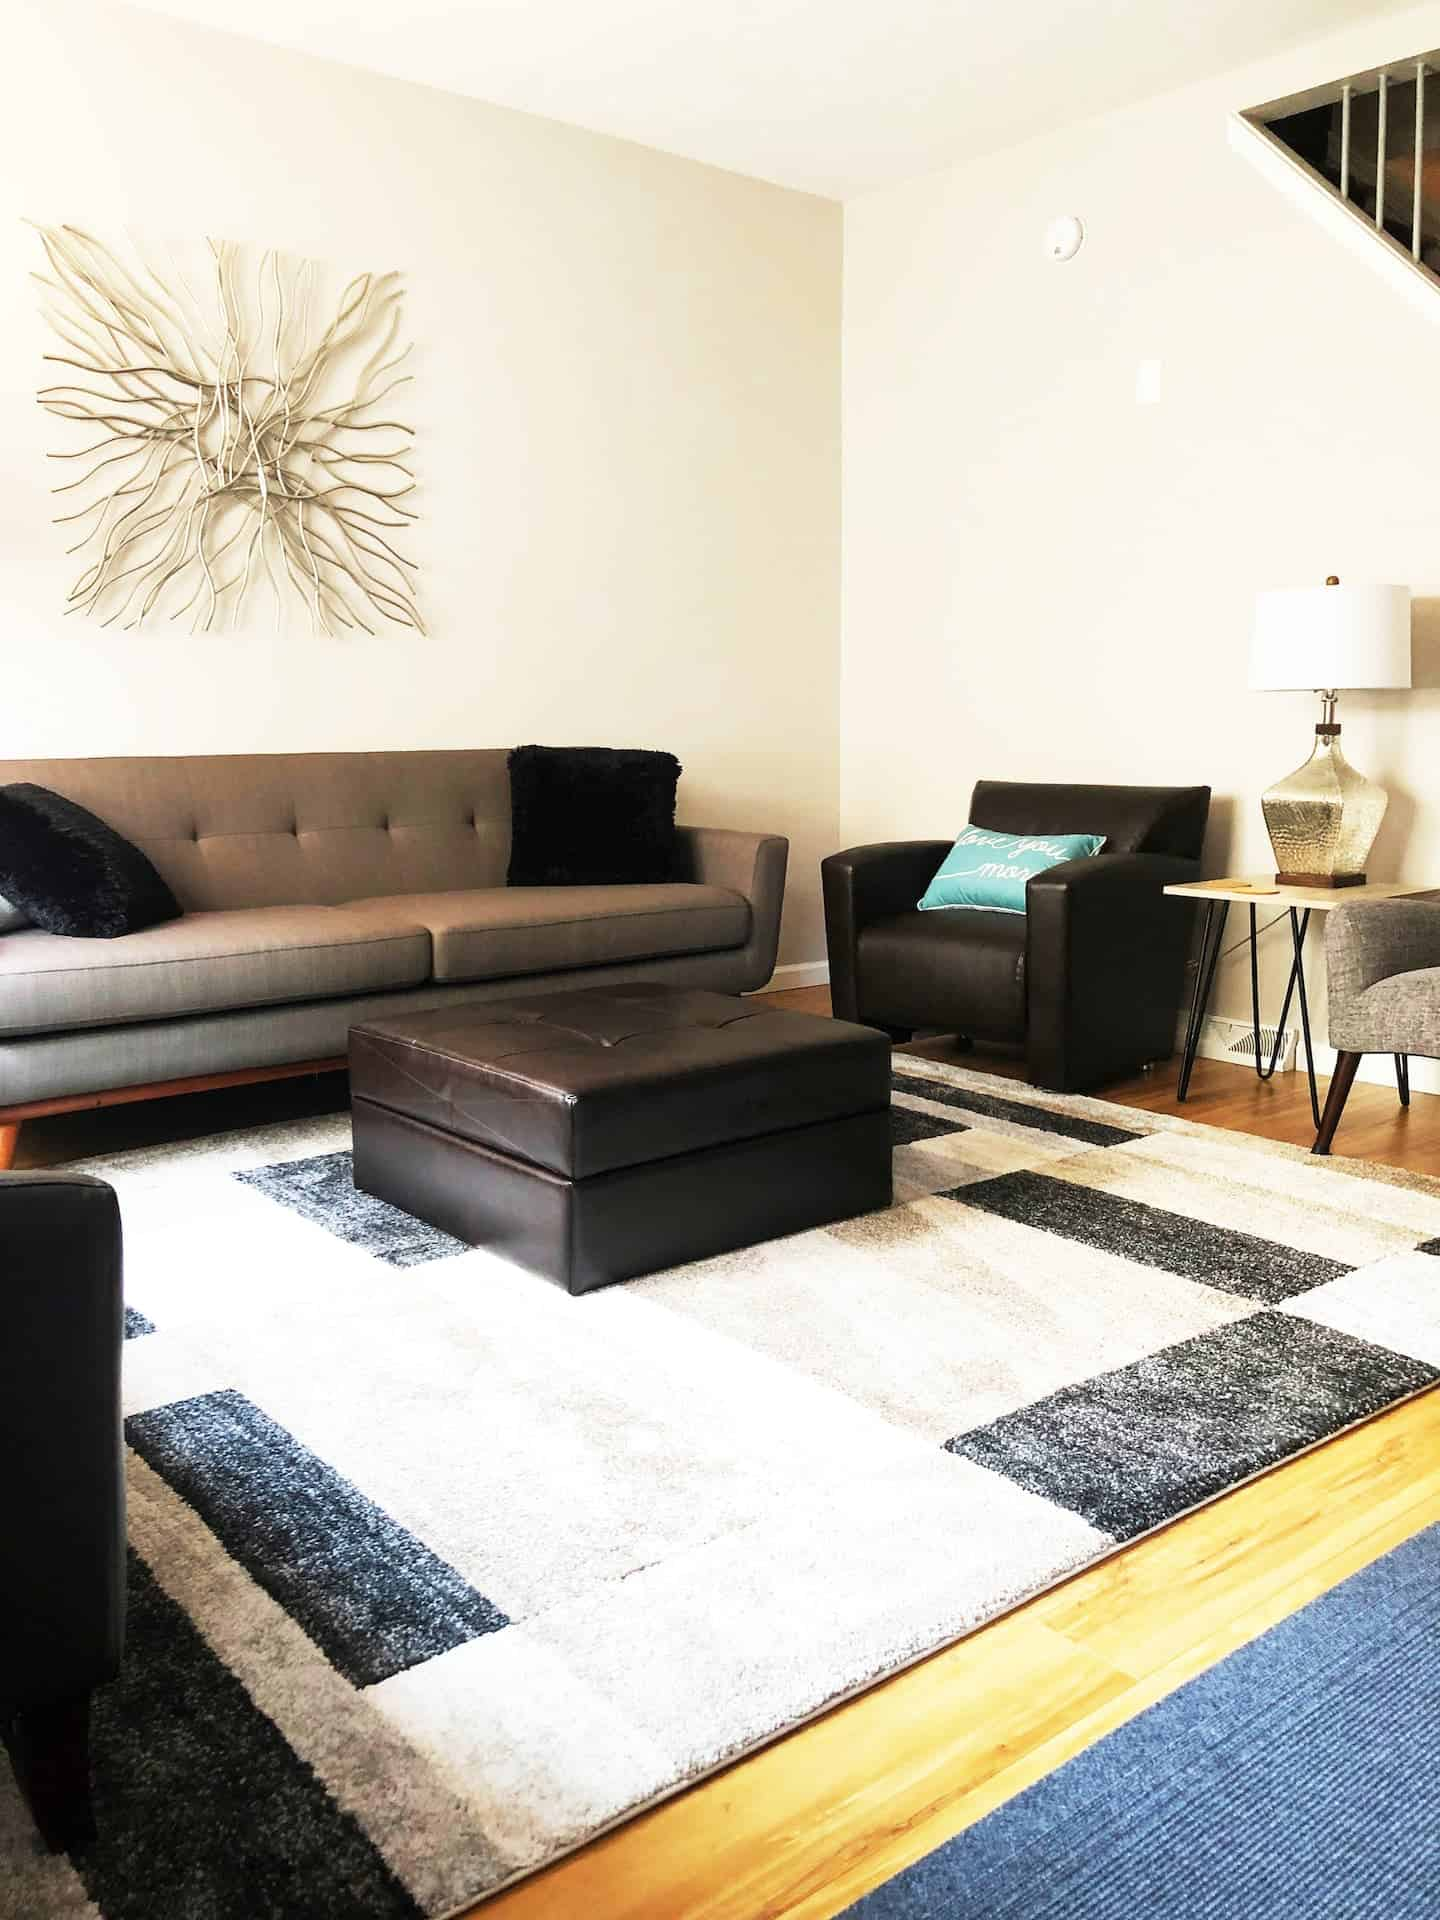 Image of Airbnb rental in Pittsburgh, Pennsylvania